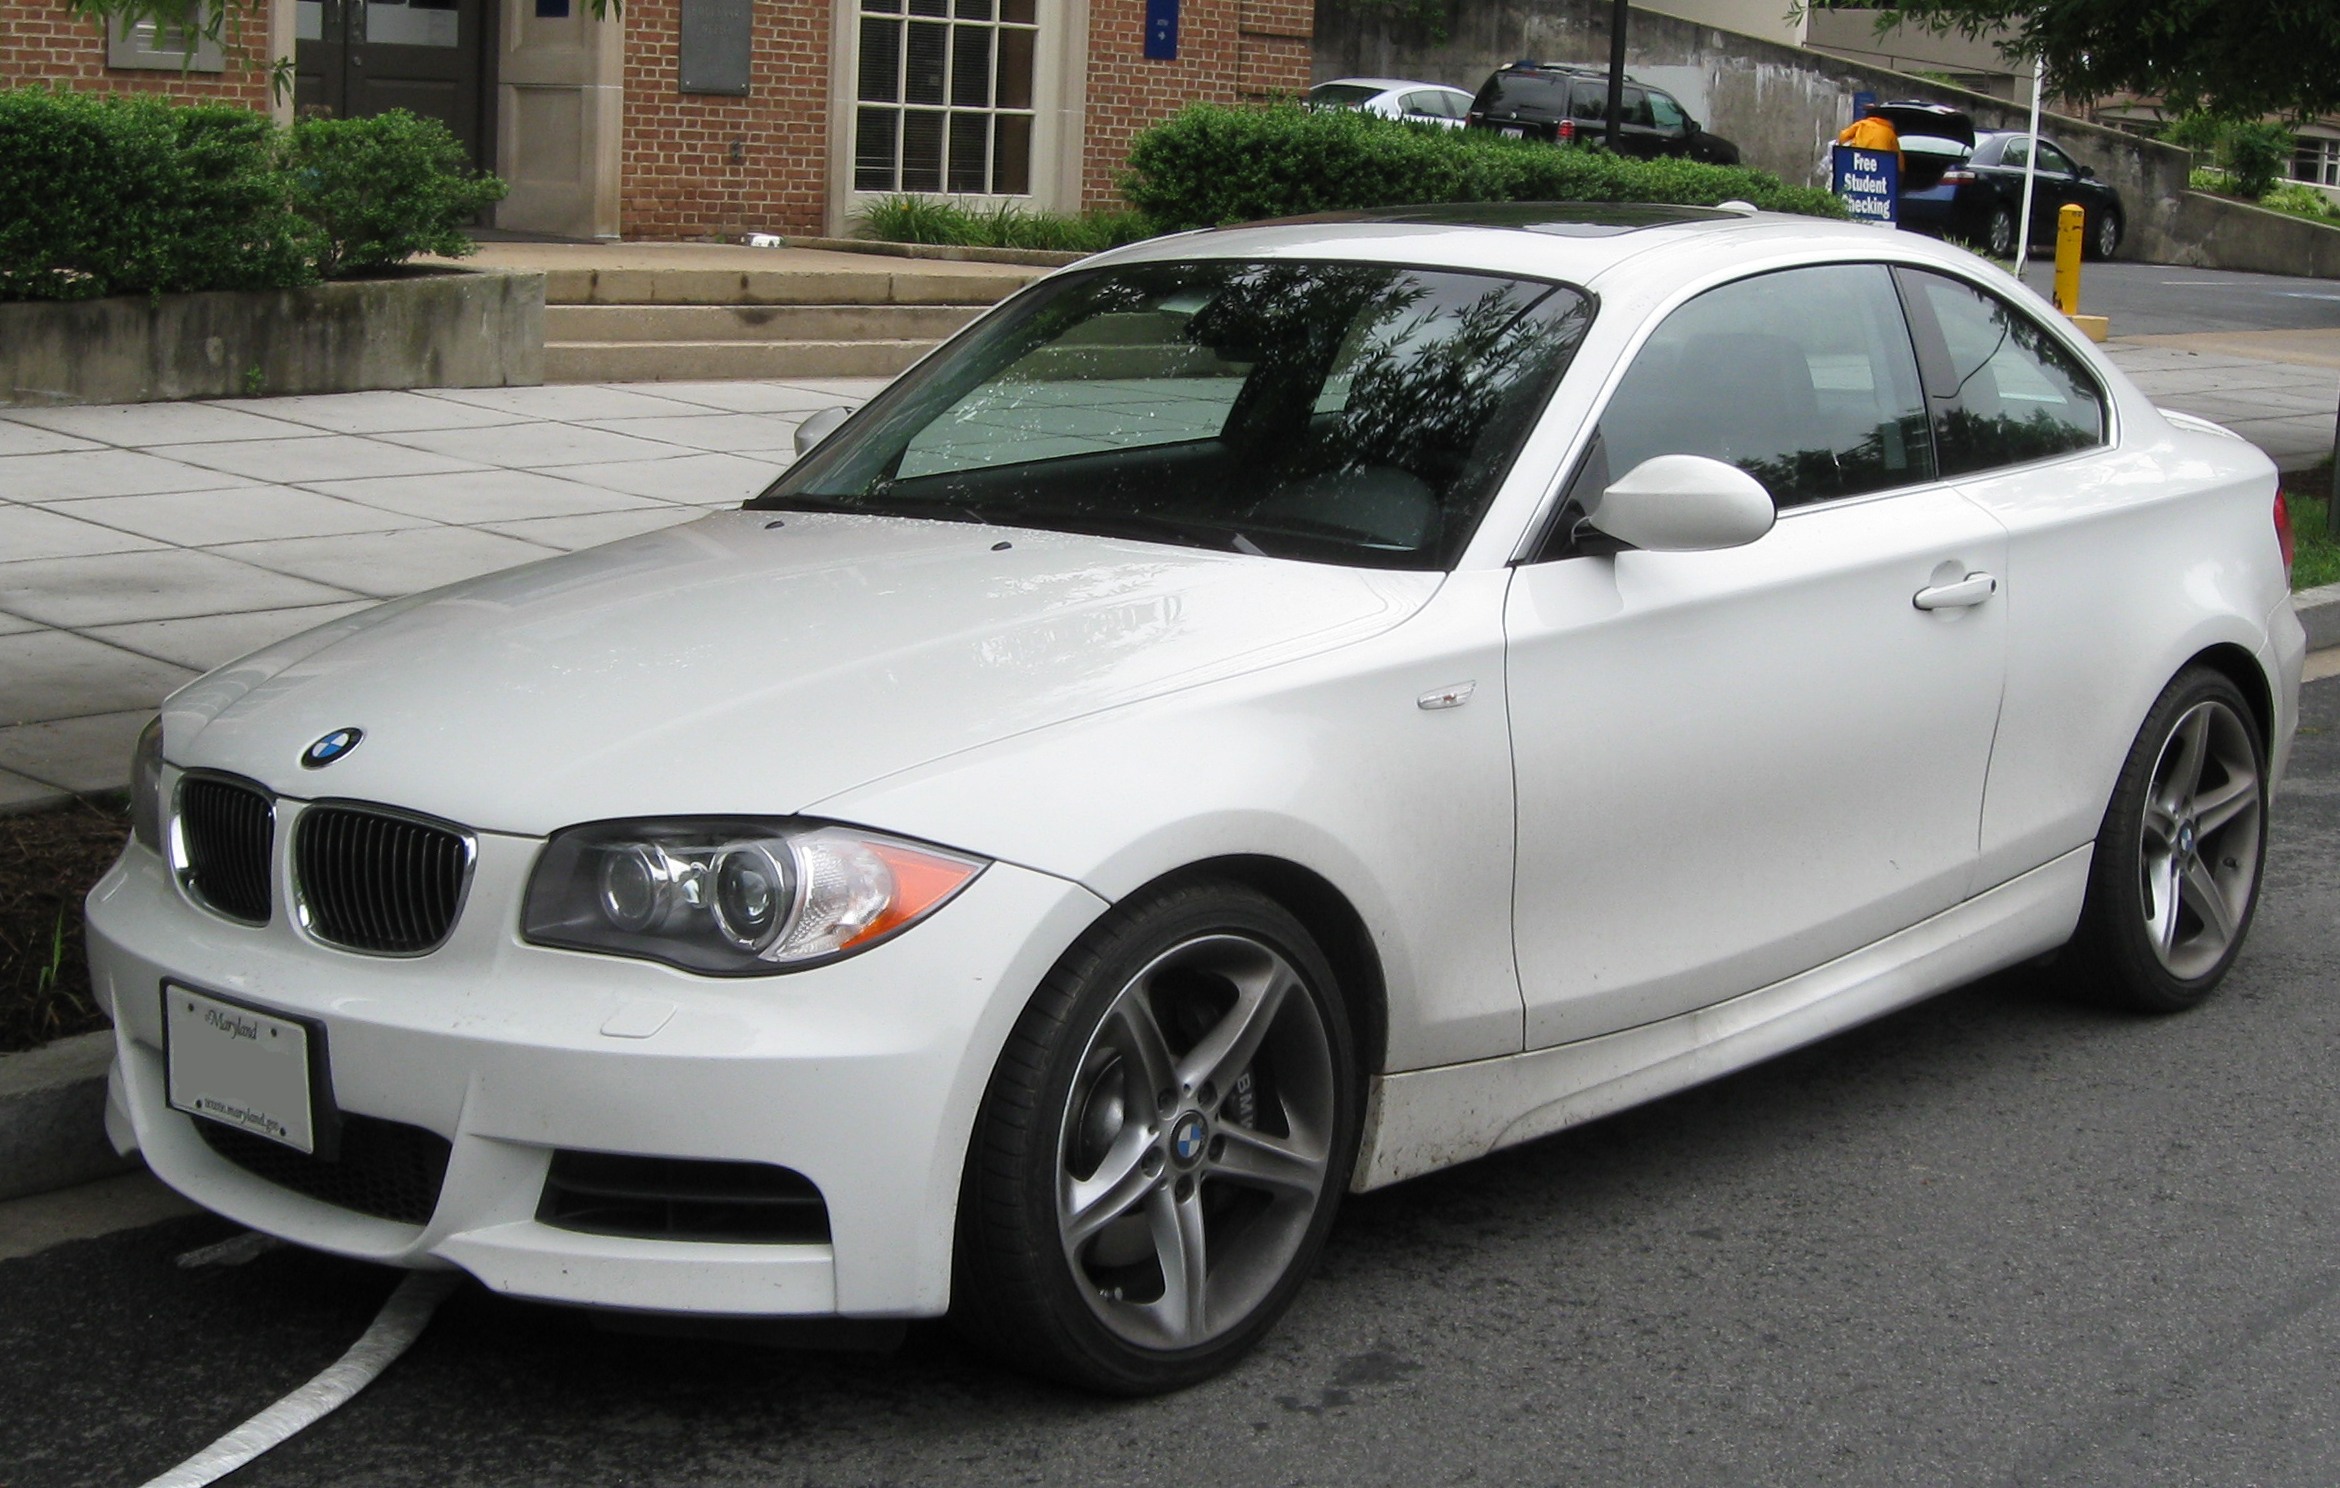 File:BMW 135i coupe.jpg